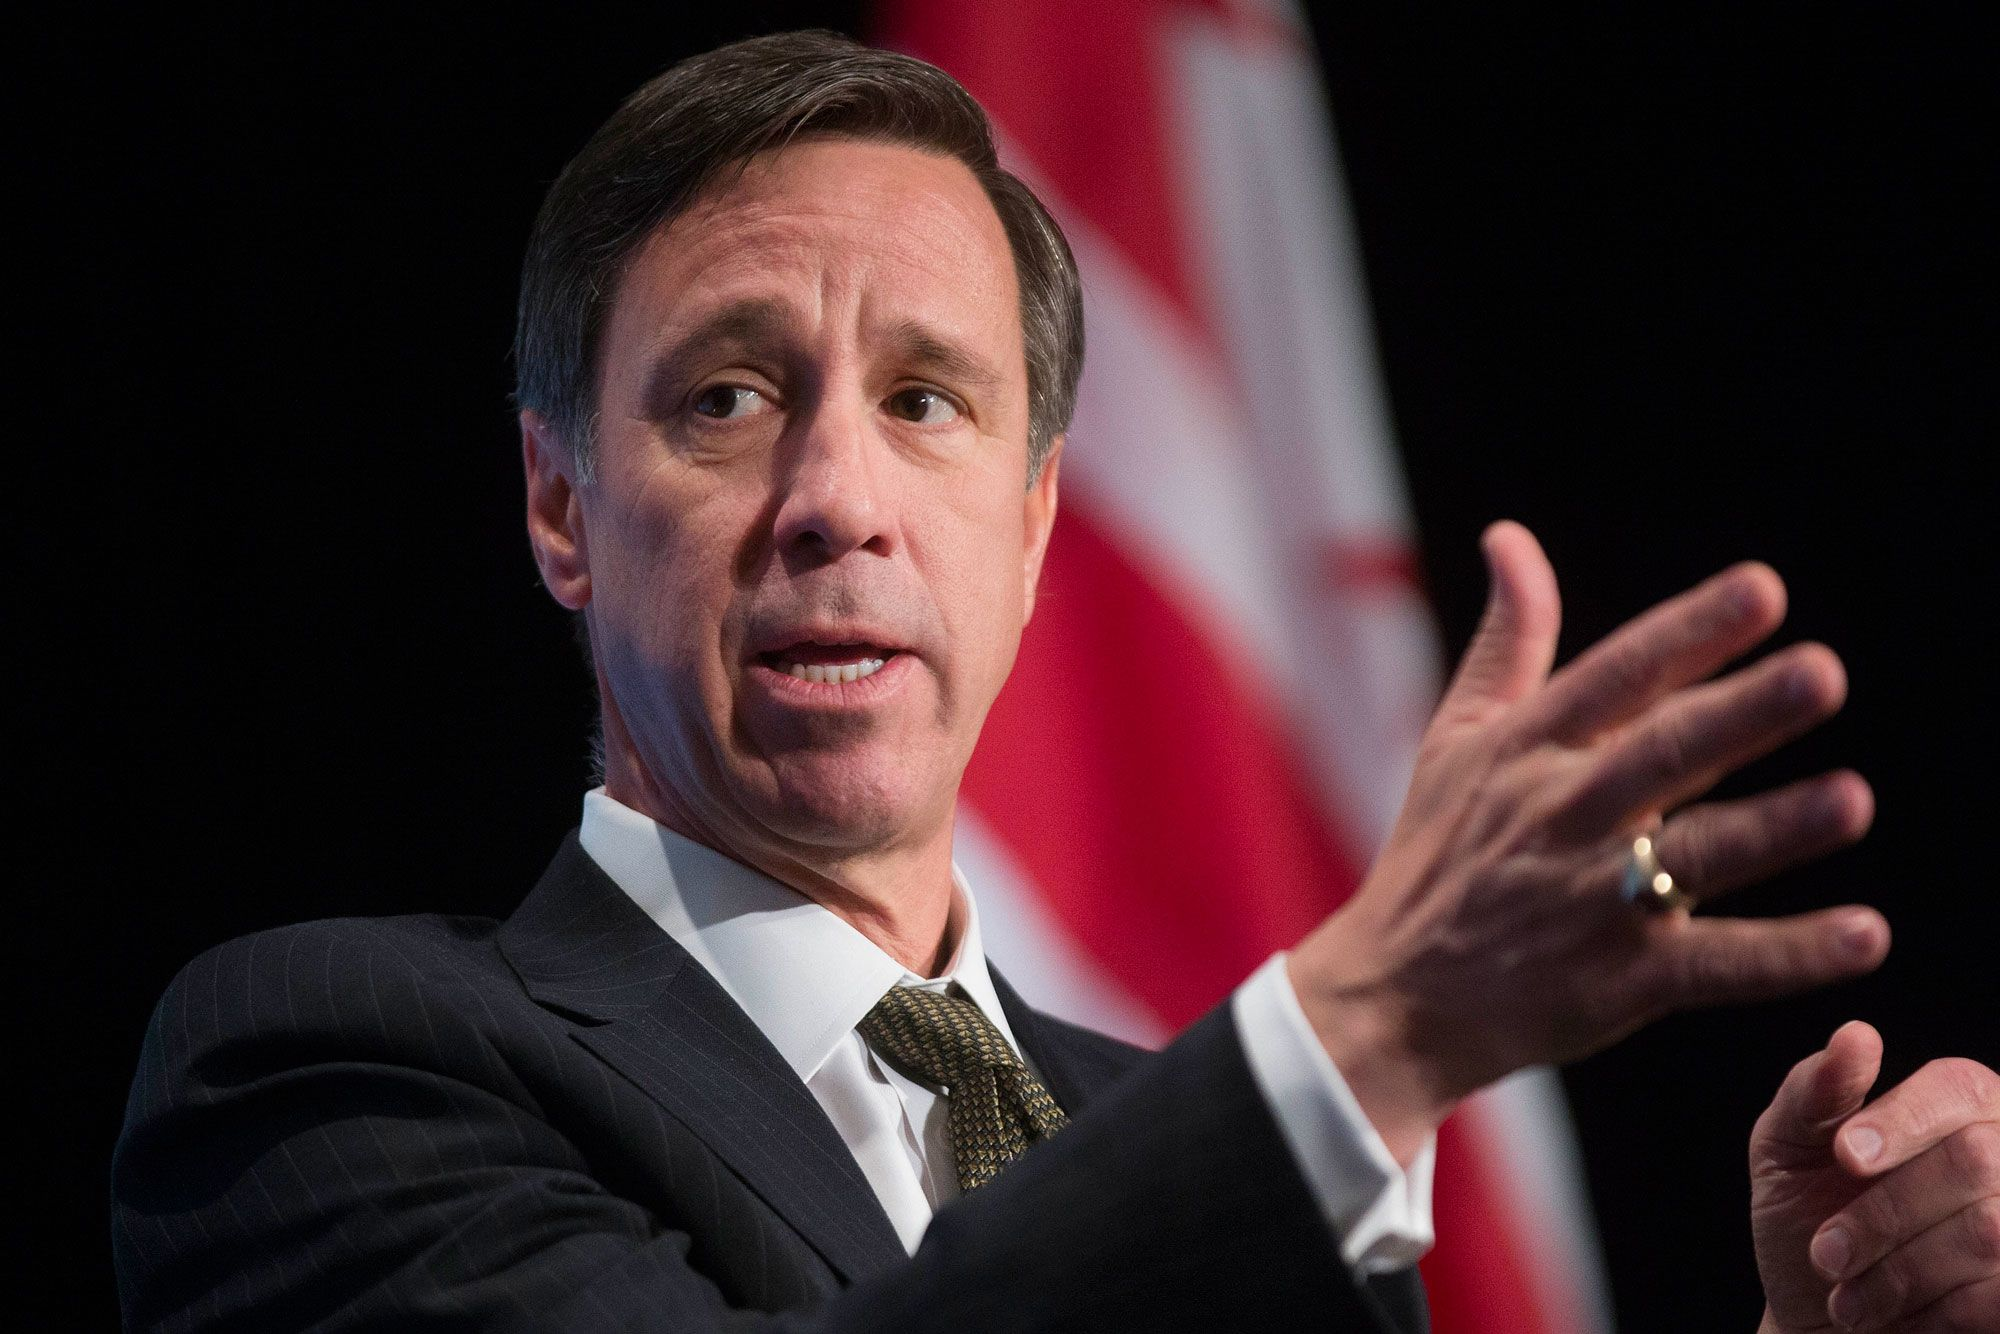 Marriott CEO Arne Sorenson diagnosed with stage 2 pancreatic cancer